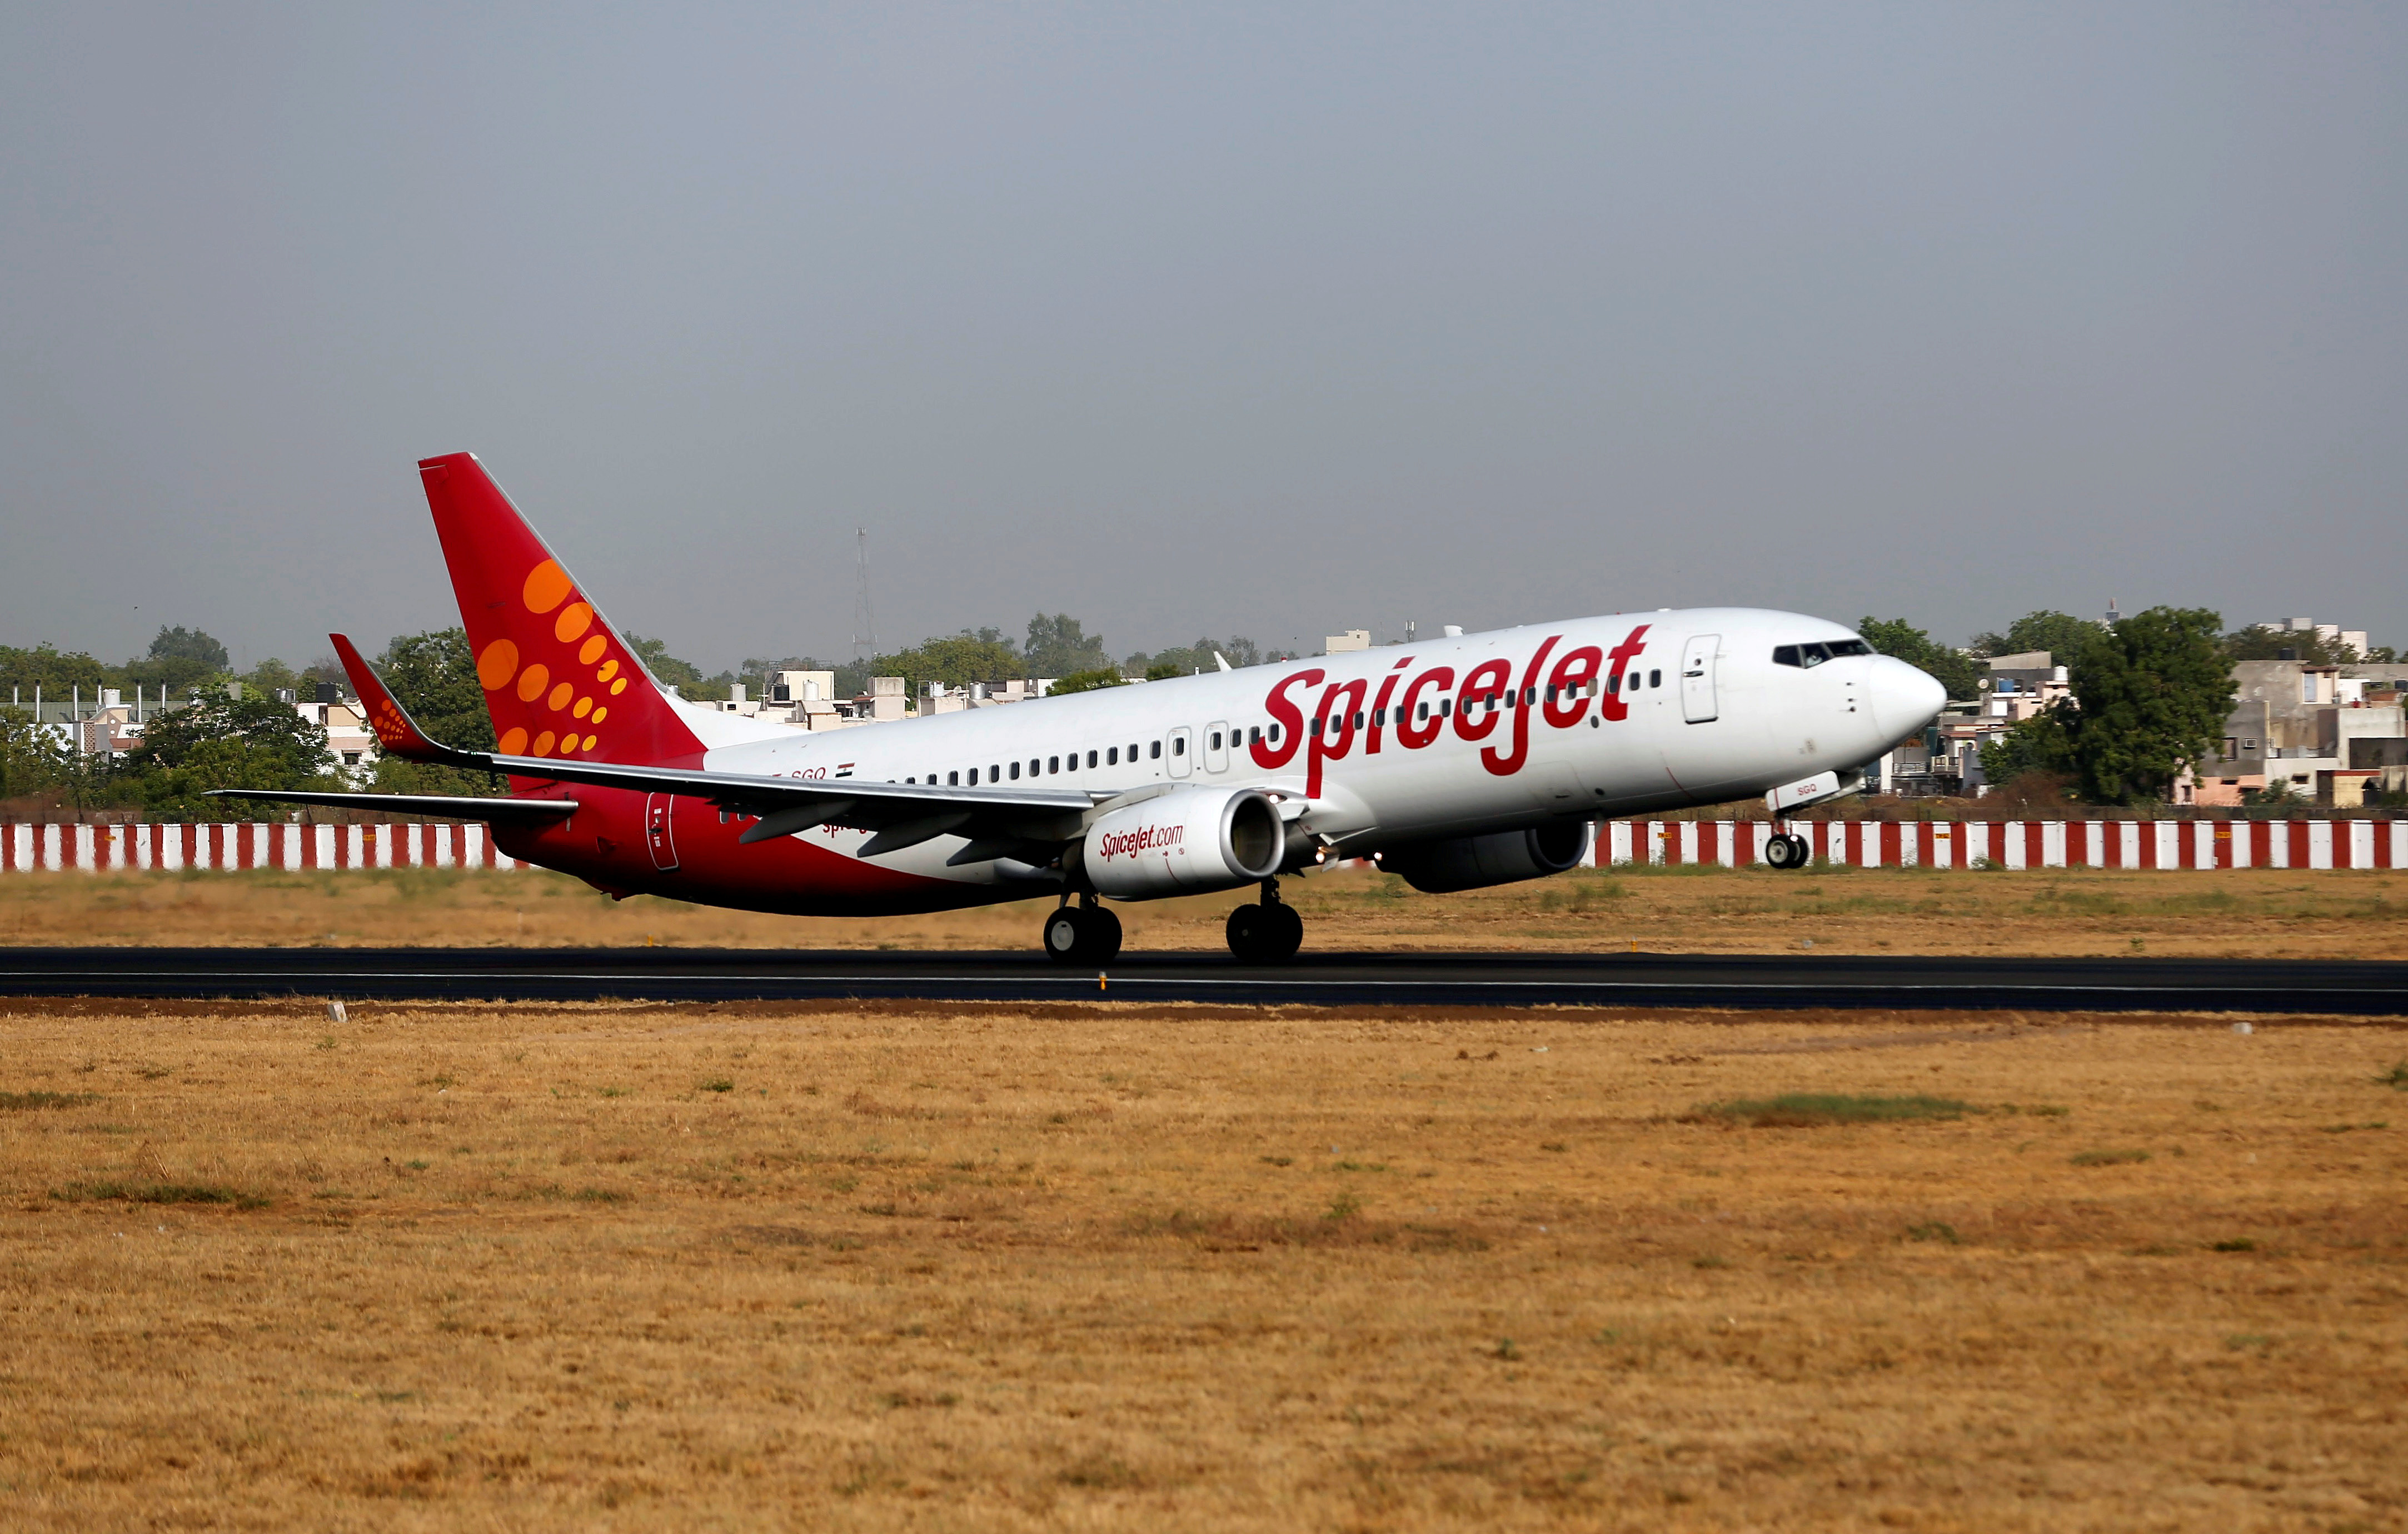 A SpiceJet passenger Boeing 737-800 aircraft takes off from Sardar Vallabhbhai Patel international airport in Ahmedabad, India May 19, 2016. REUTERS/Amit Dave